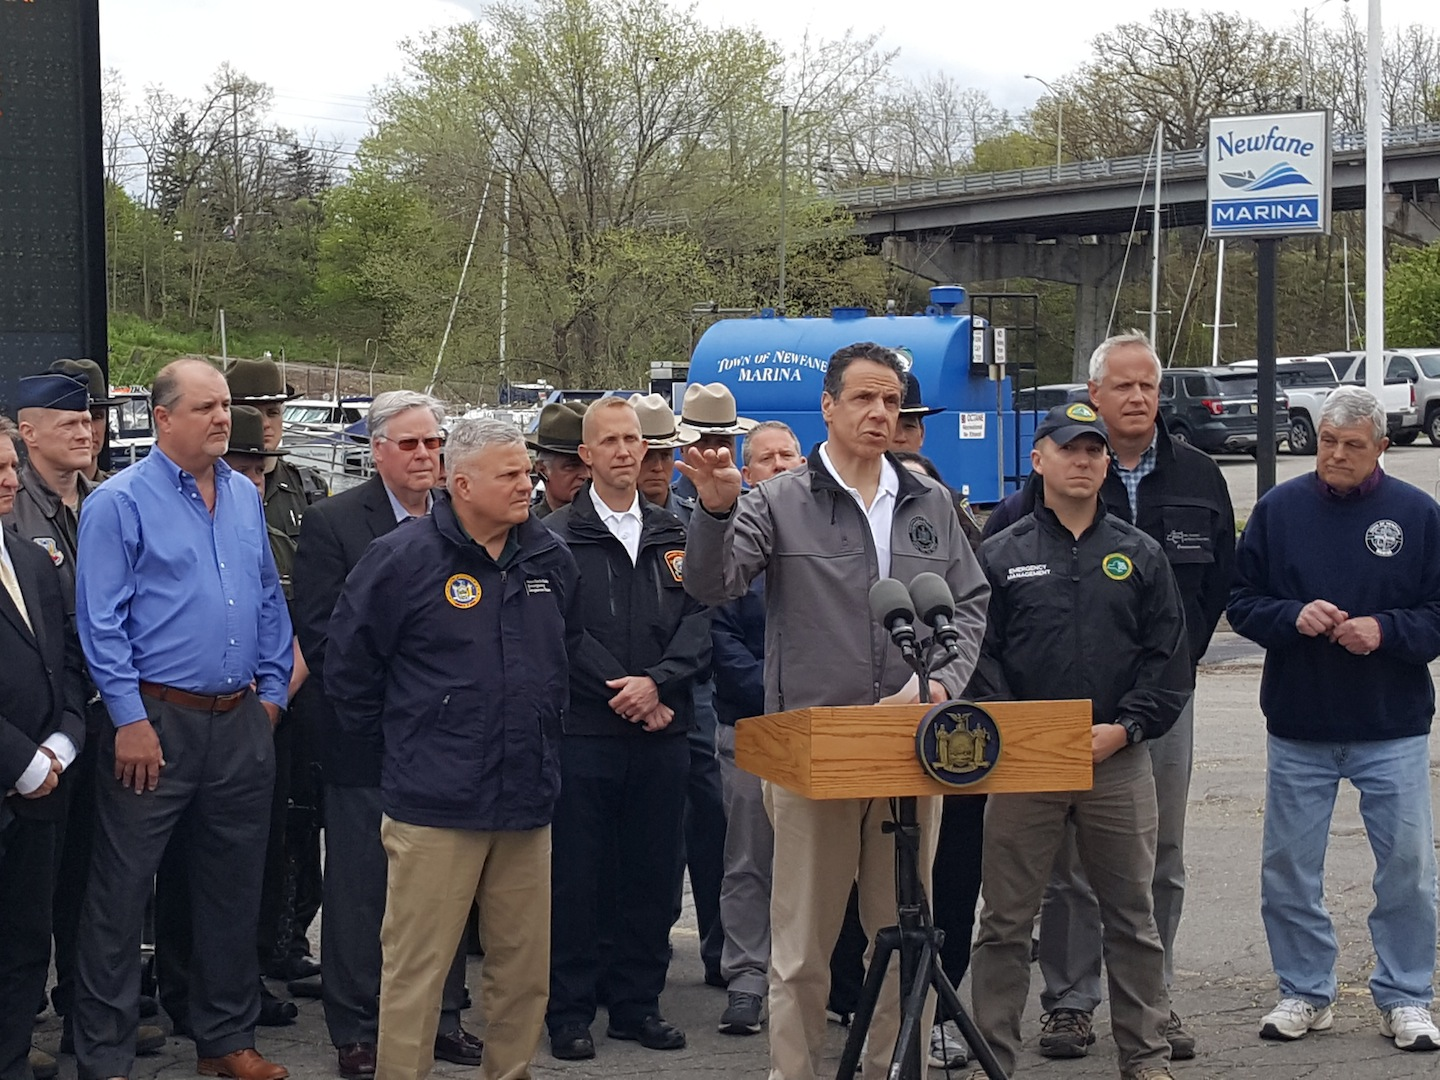 Gov. Andrew Cuomo addresses the media Monday at the Newfane Marina. (Photo by Terry Duffy)